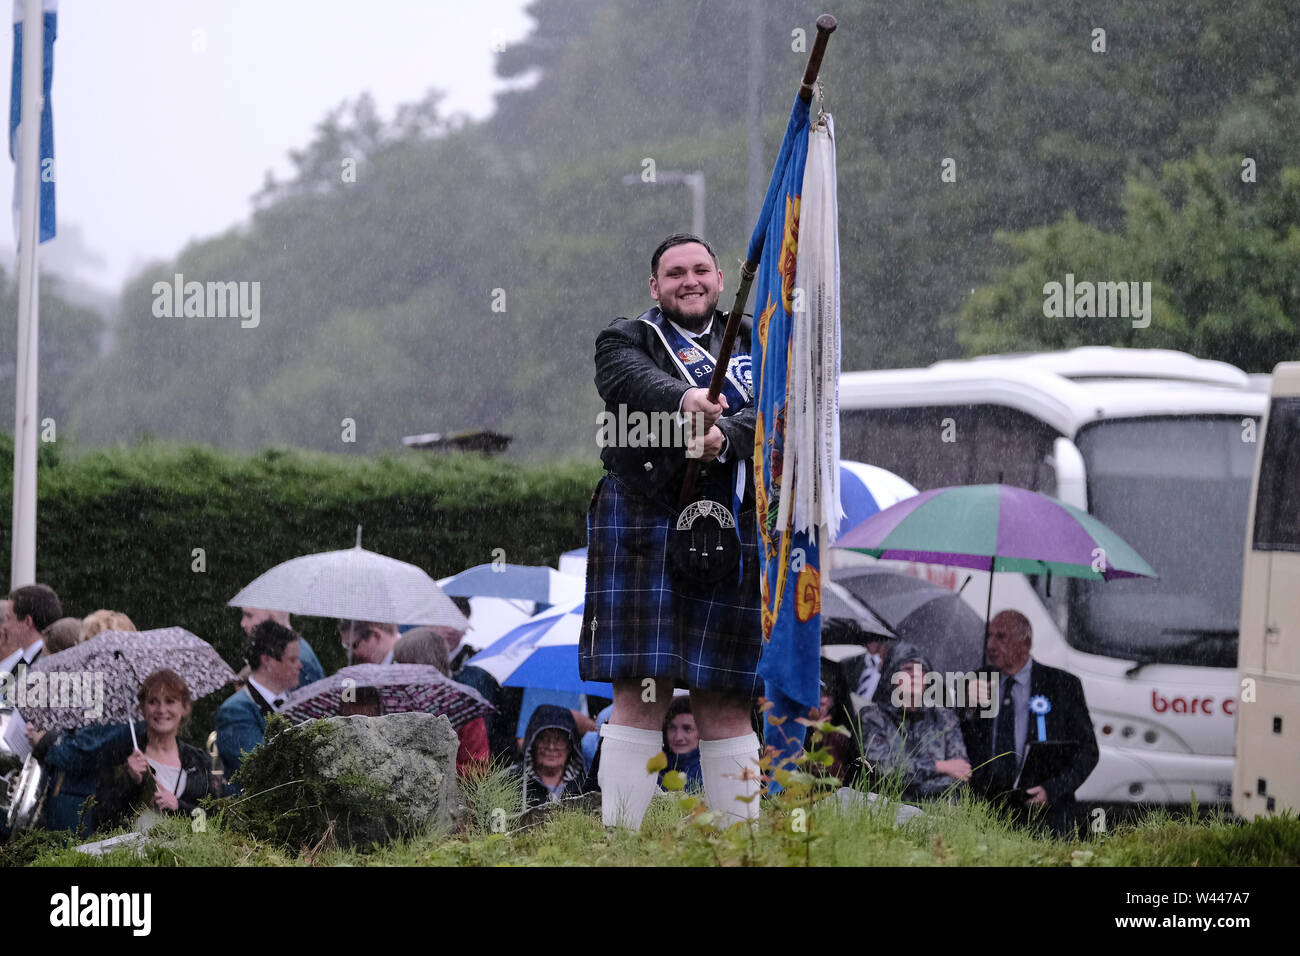 Innerleithen, UK. 19th July, 2019. St Ronans Cleikum Innerleithen Standard Bearer 2019, Ronan D Caine smiling despite the heavy rain at the Cleikum Ceremonies, Memorial Hall, Innerleithen. as part of St RonanÕs Games Week, Friday 19 July 2019 . Instituted in 1827, The Games are the oldest organised sports meeting in Scotland and are now part of a week long festival that incorporates many events for every age group. Central to the festivities are the Cleikum Ceremonies when the town's association with its Patron Saint, St. Ronan, is celebrated ( Credit: Rob Gray/Alamy Live News - Stock Image